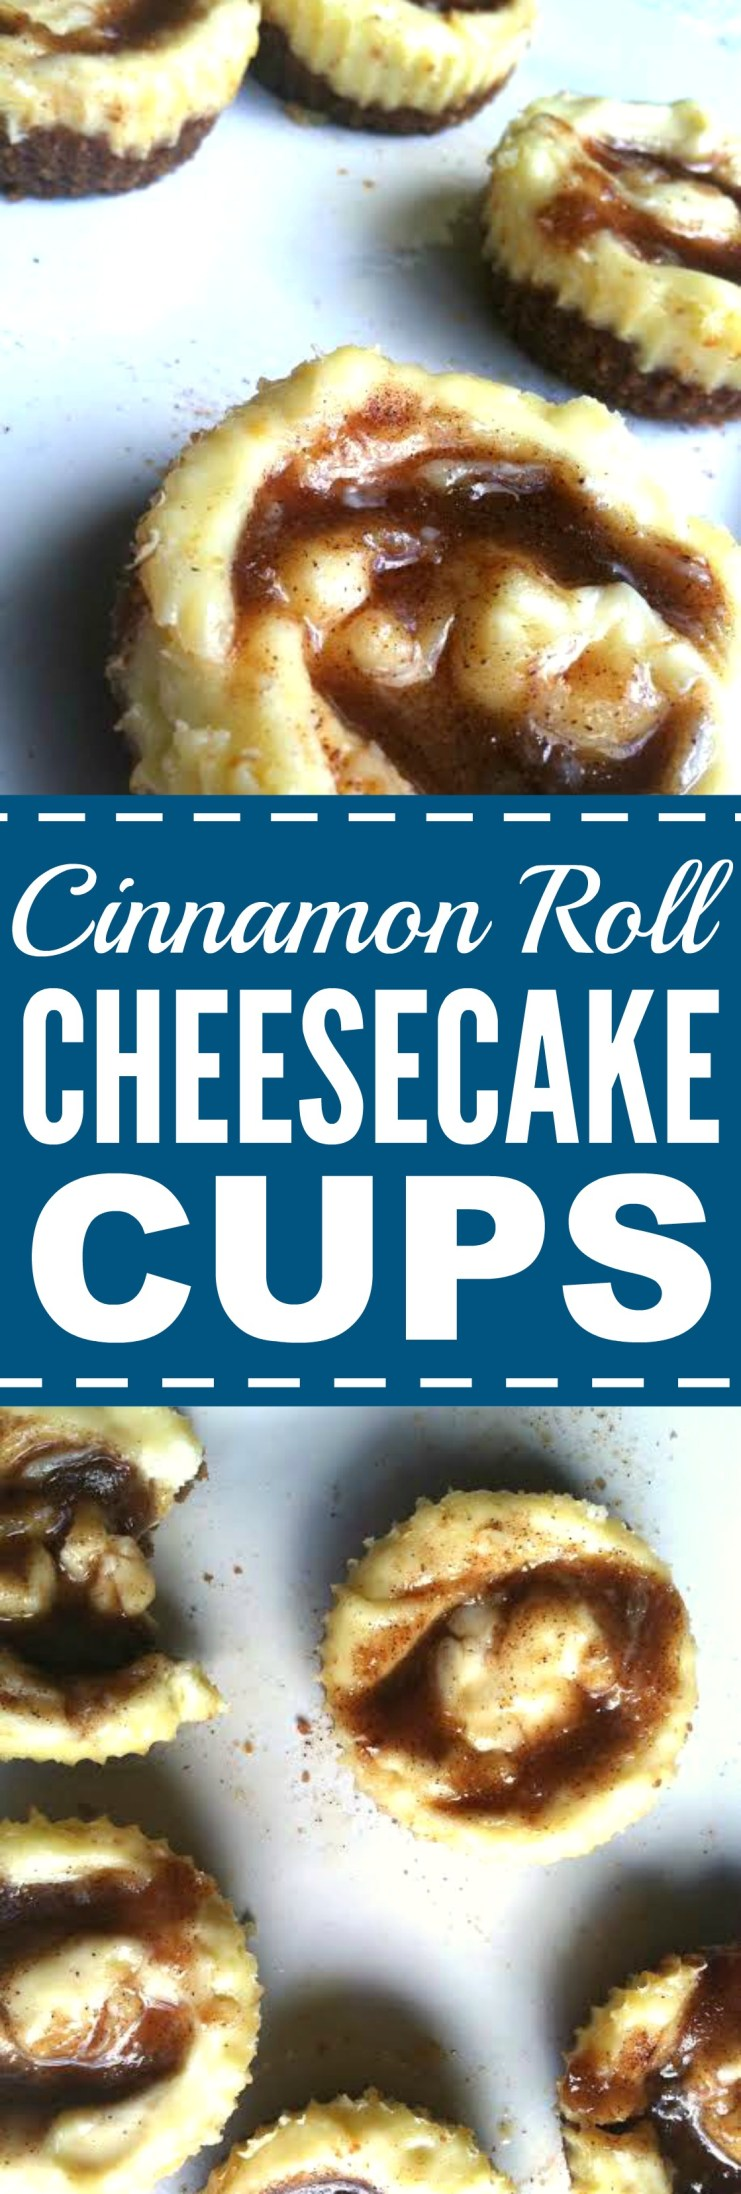 These no bake cinnamon roll Cheescake cups are THE BEST! I'm so glad I found this AMAZING dessert recipe! Now I have a great holiday or fall recipe or anytime recipe really! Thank you for this!